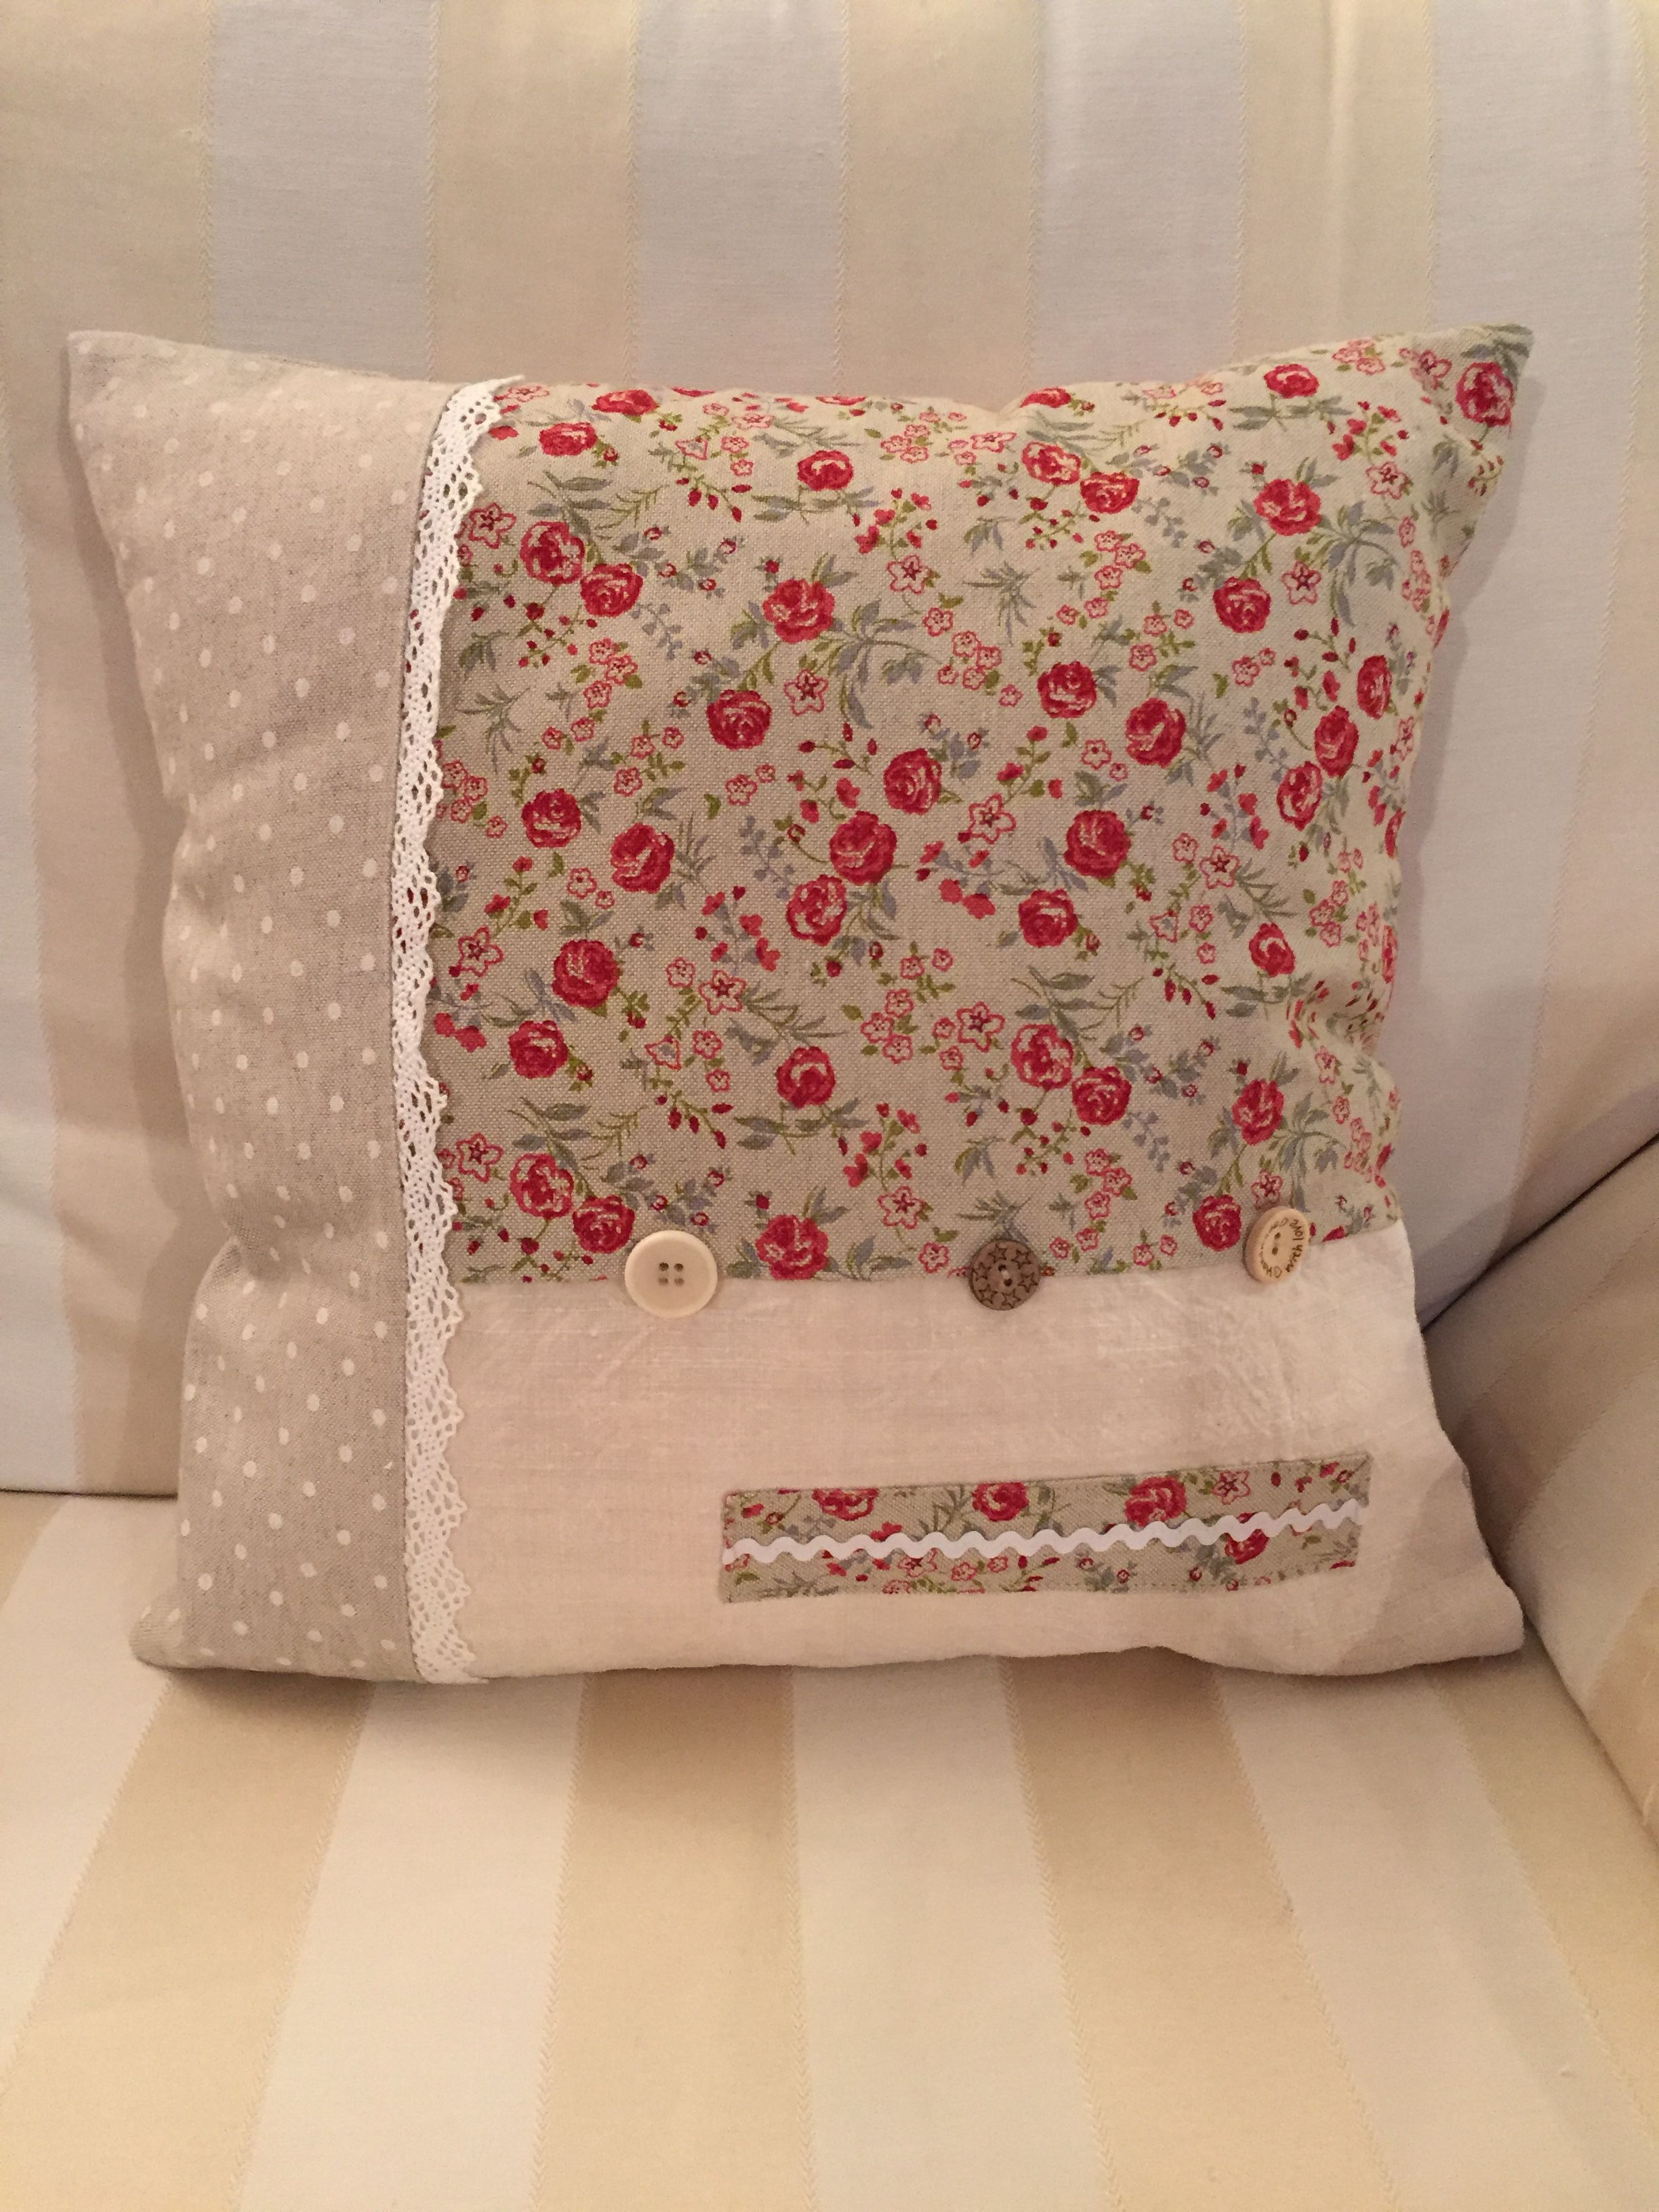 flowers lace cotton pillow beige flax zip white red buttons square mixed floreal pois